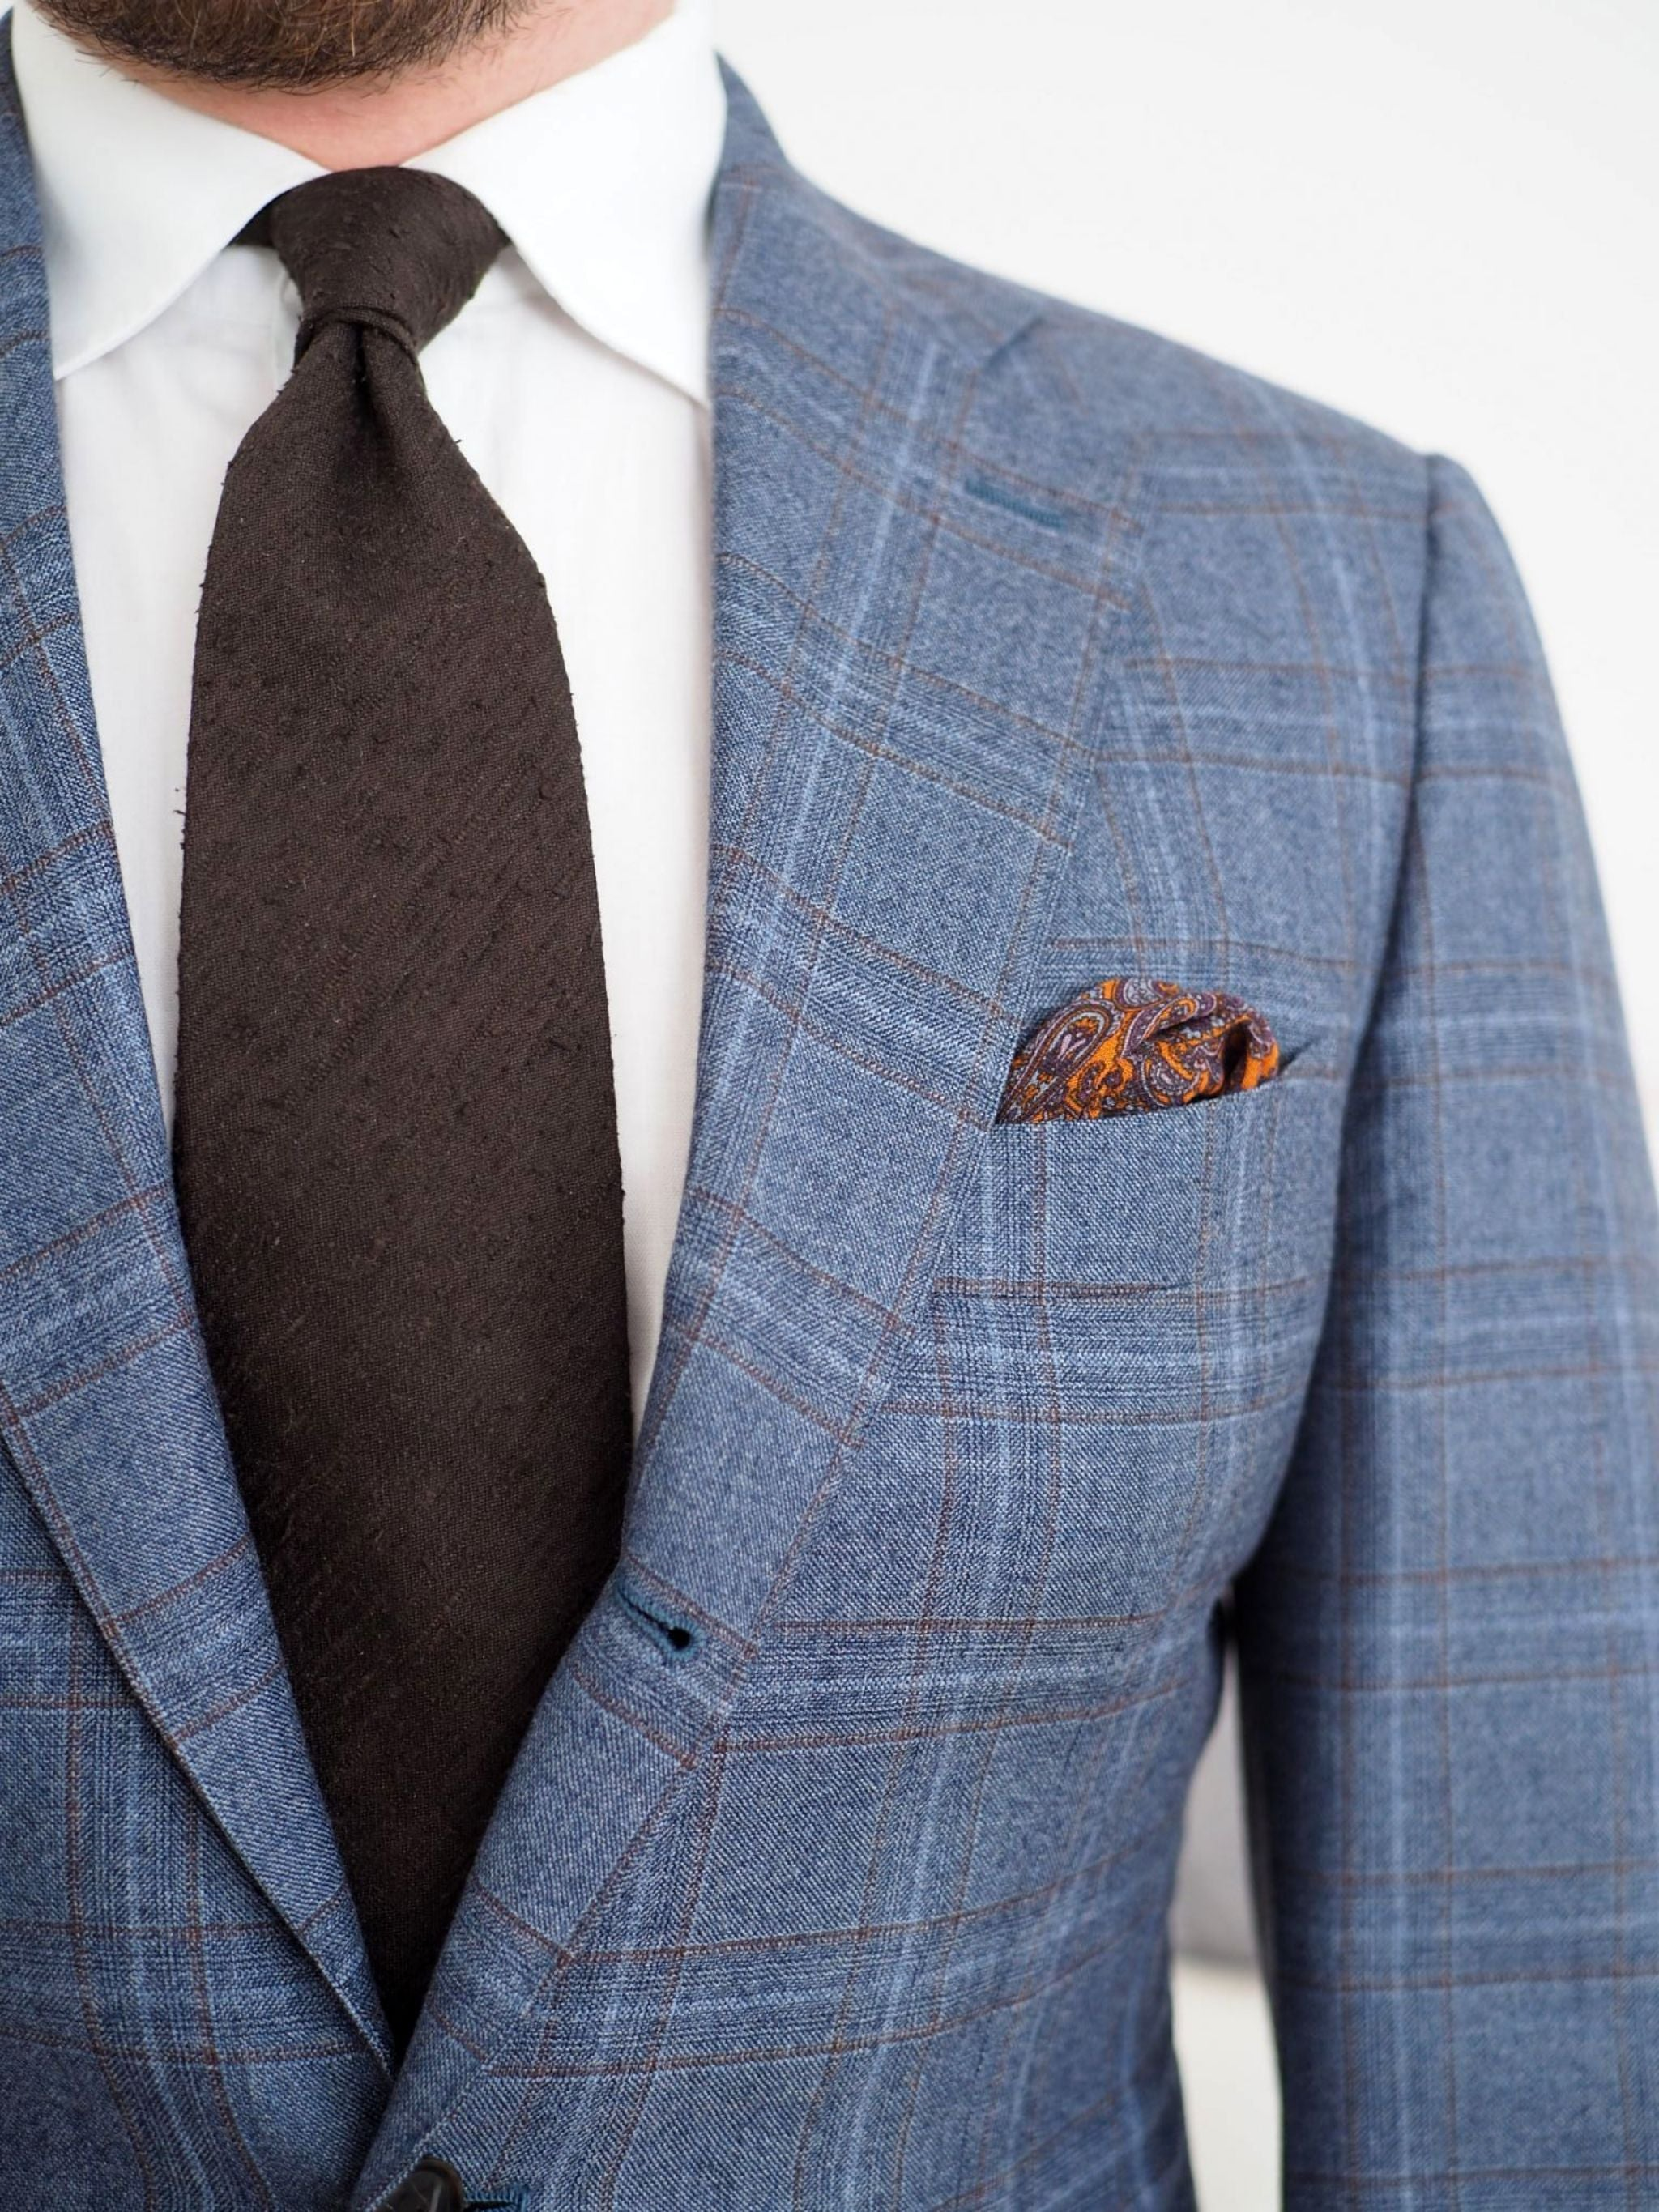 Gray suit with restrained check pattern and soft textures.